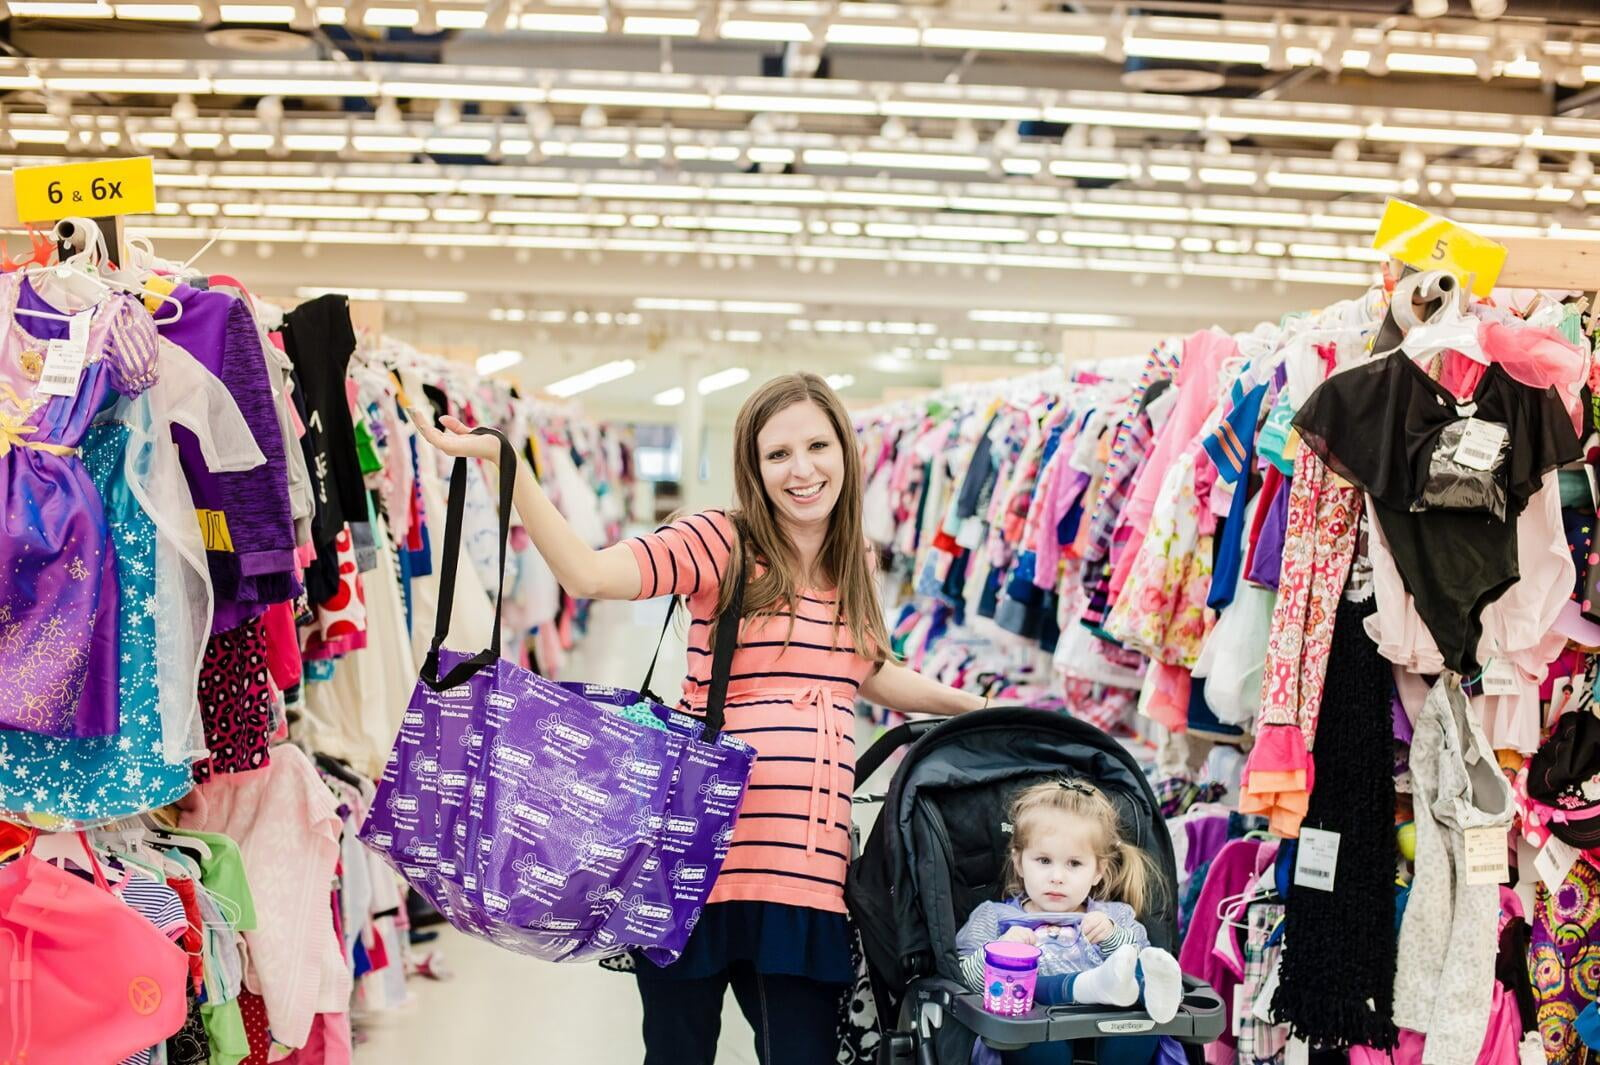 A Mom holds up her JBF shopping bag with her right hand while resting her left hand on her stroller with toddler daughter inside.